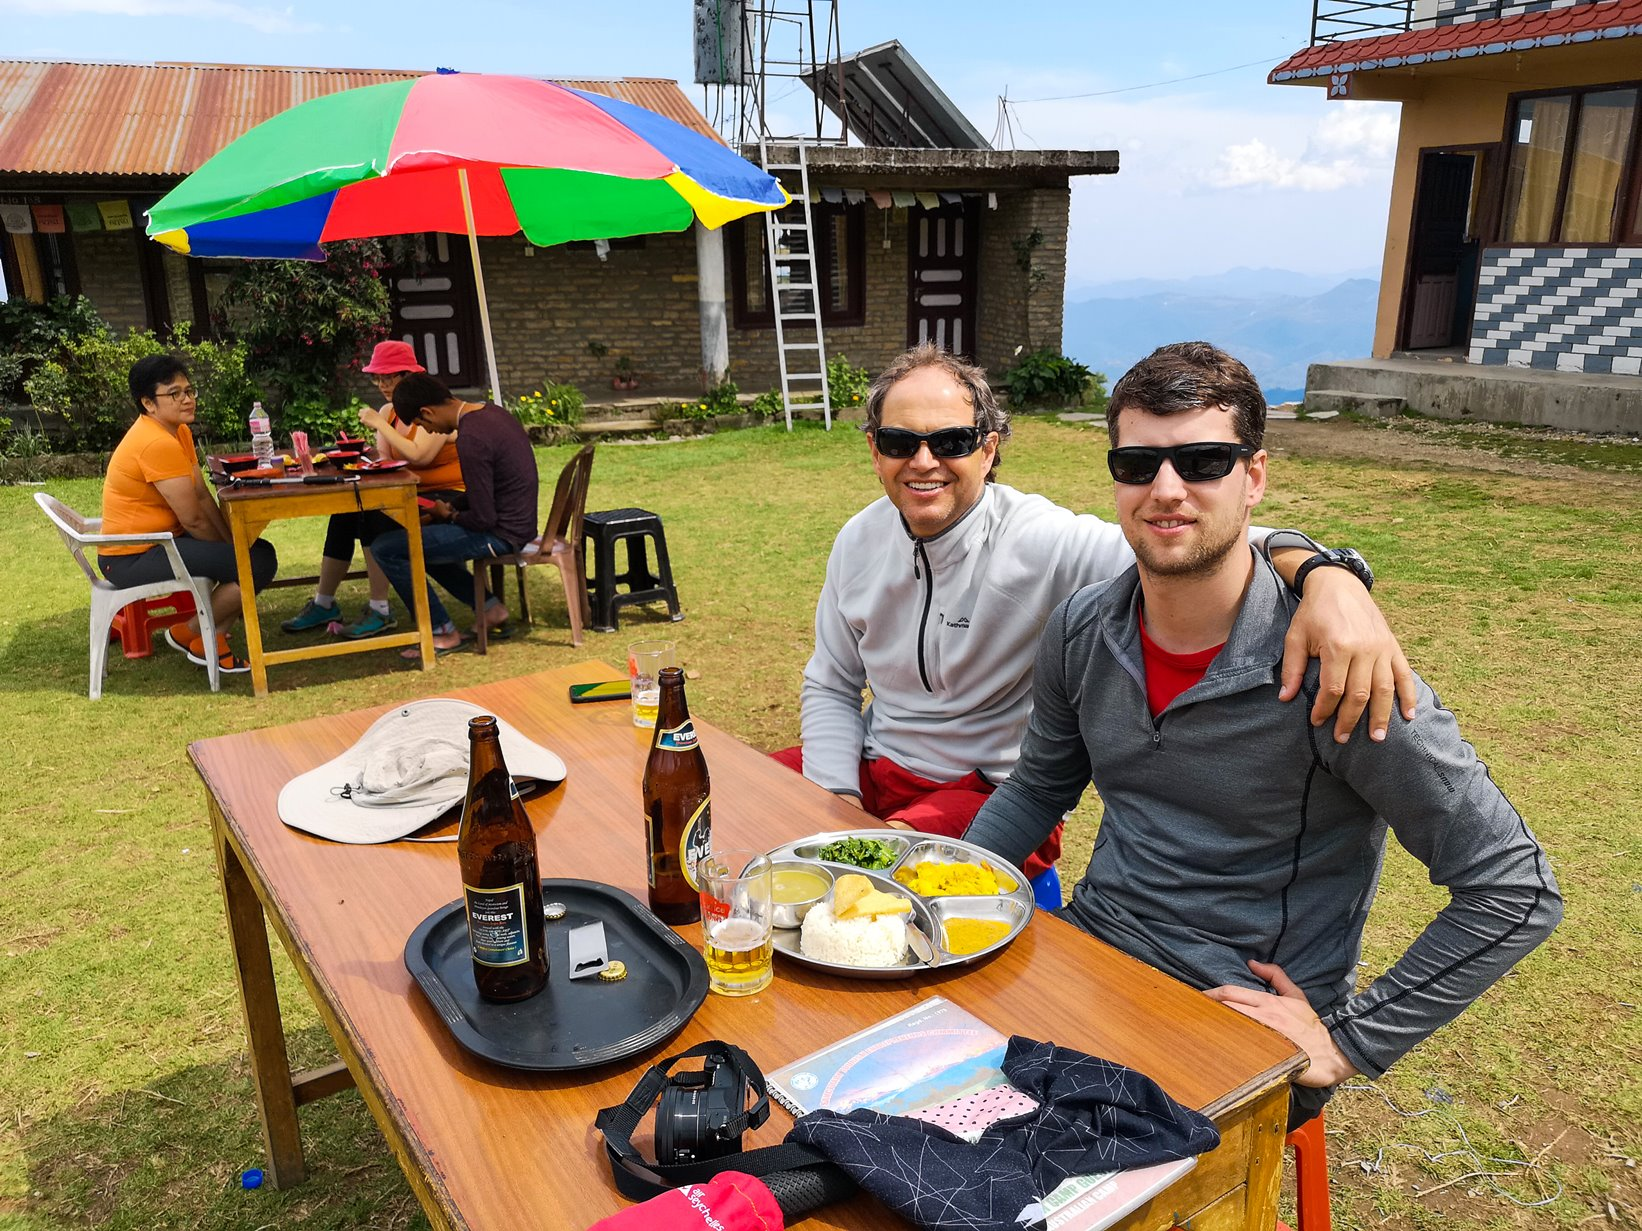 Having lunch at Australian camp in Nepal